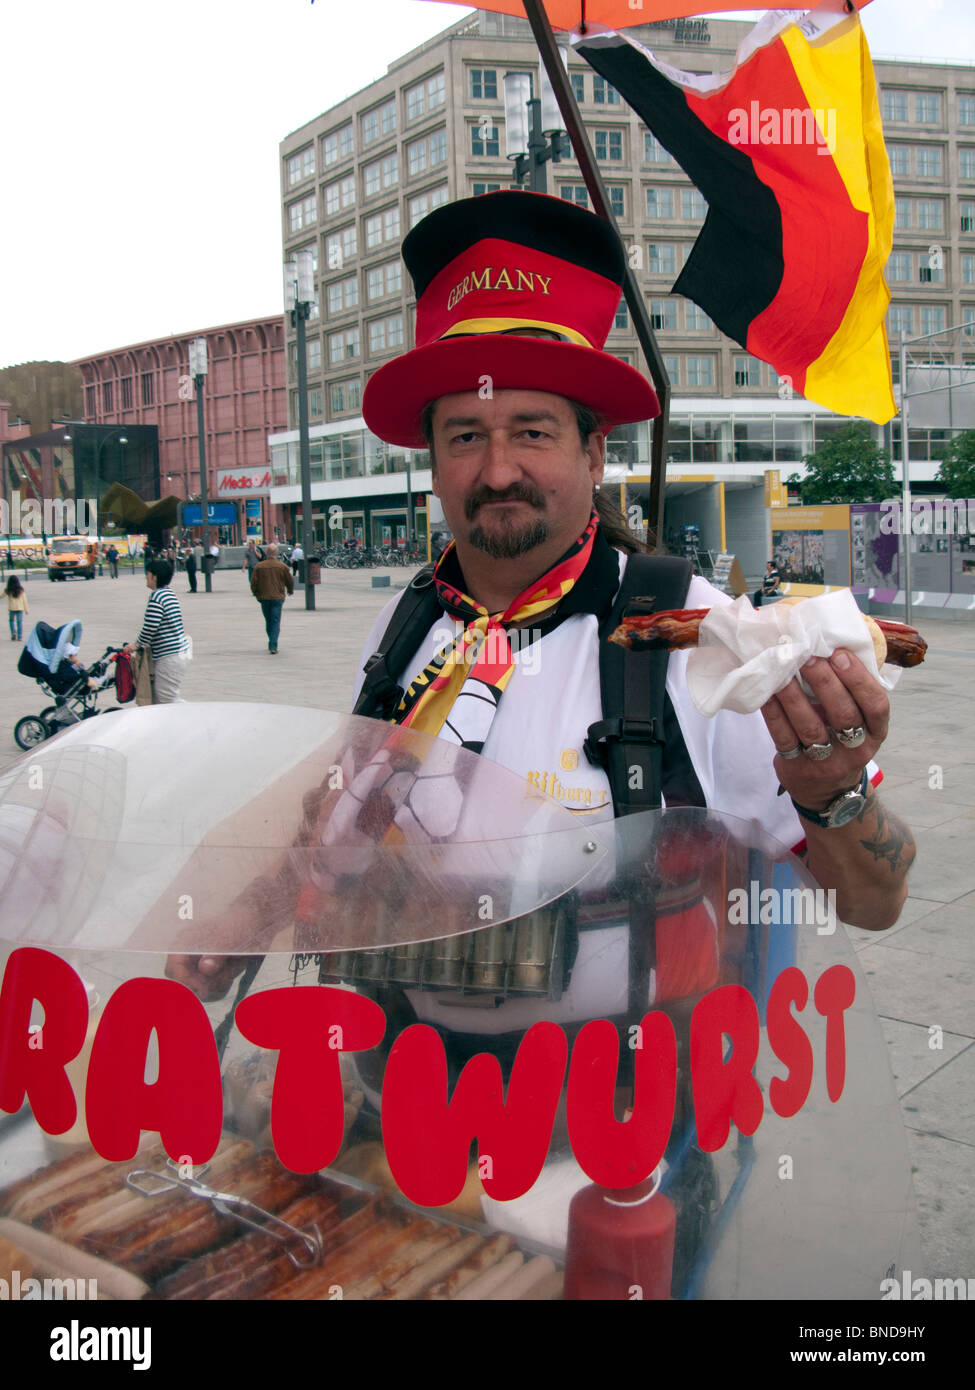 Man selling traditional Bratwurst sausage hot dogs from mobile stall in Berlin Germany Stock Photo